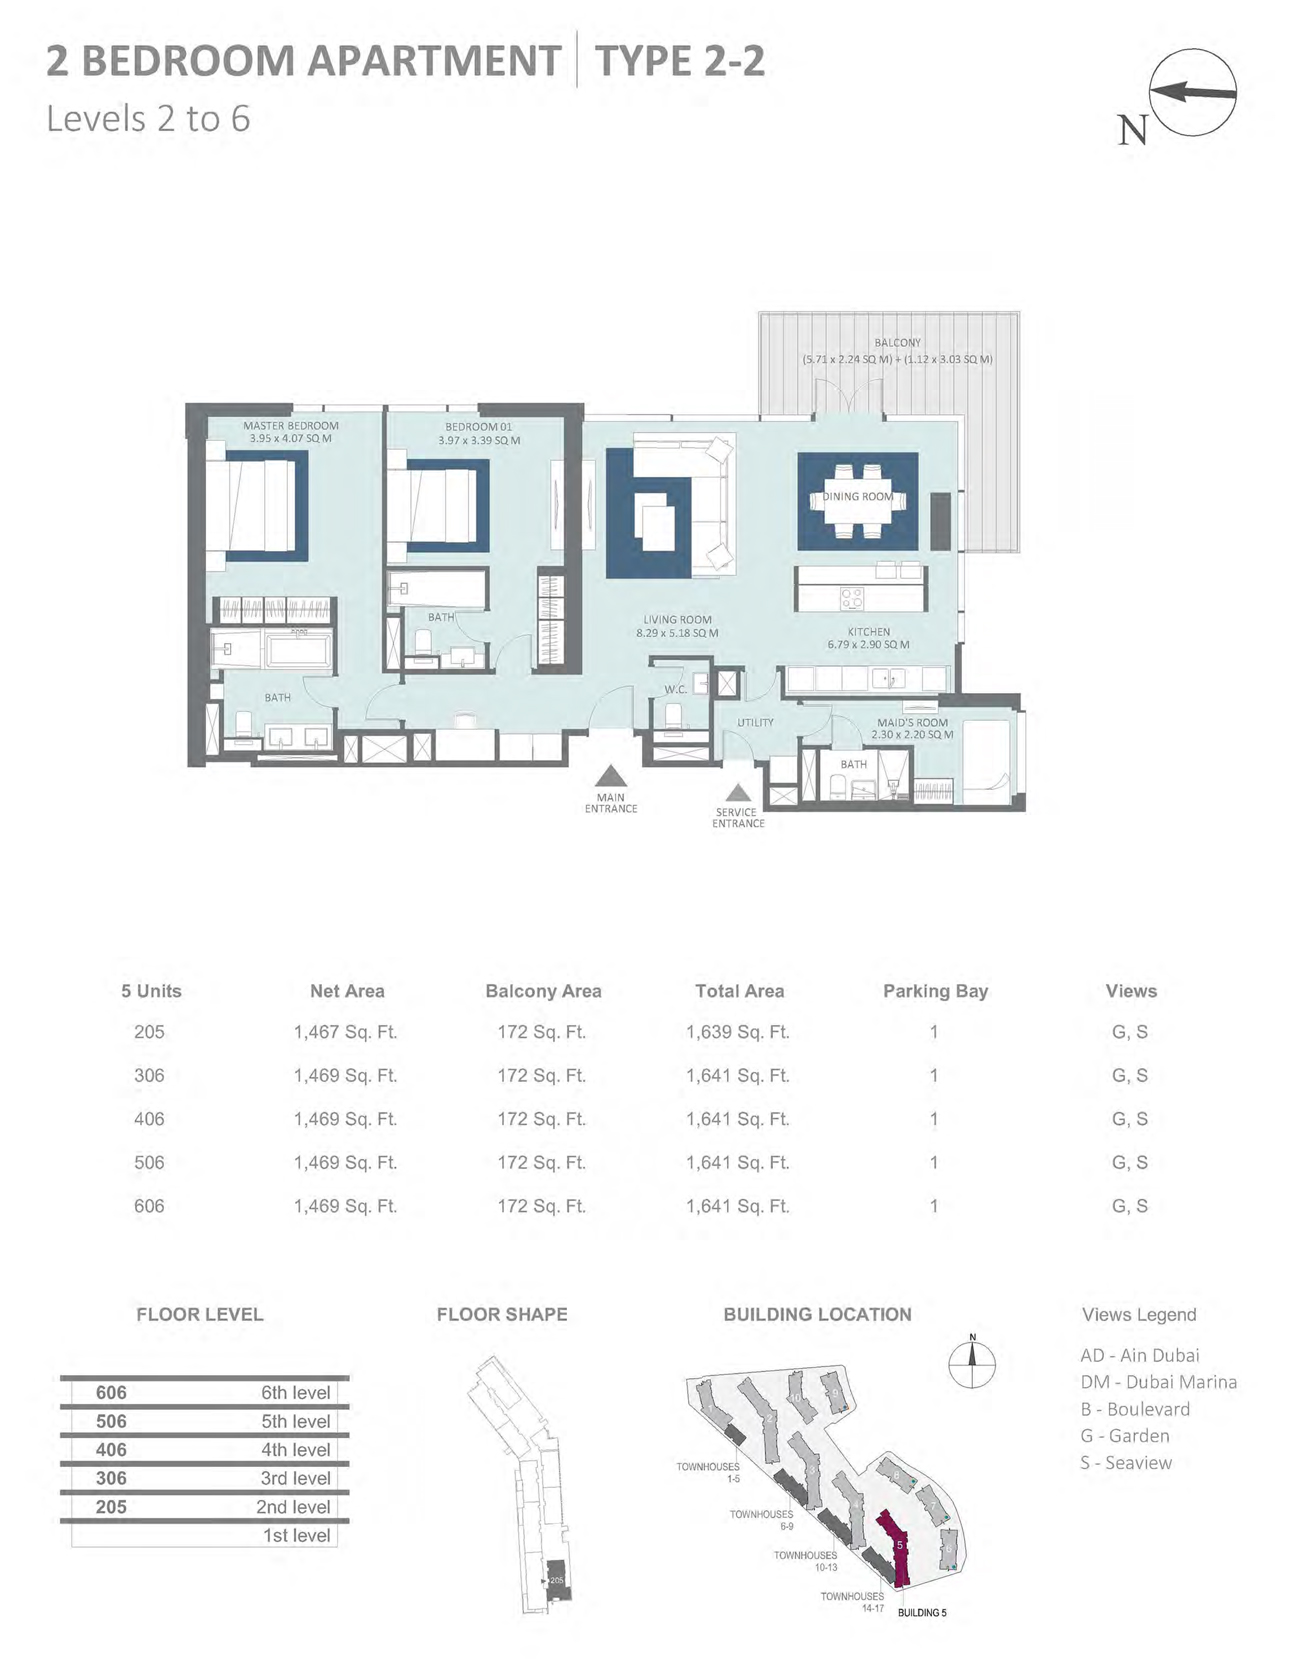 Building 5 - 2 Bedroom Type 2-2 Level 2-6 , Size 1641    sq. ft.